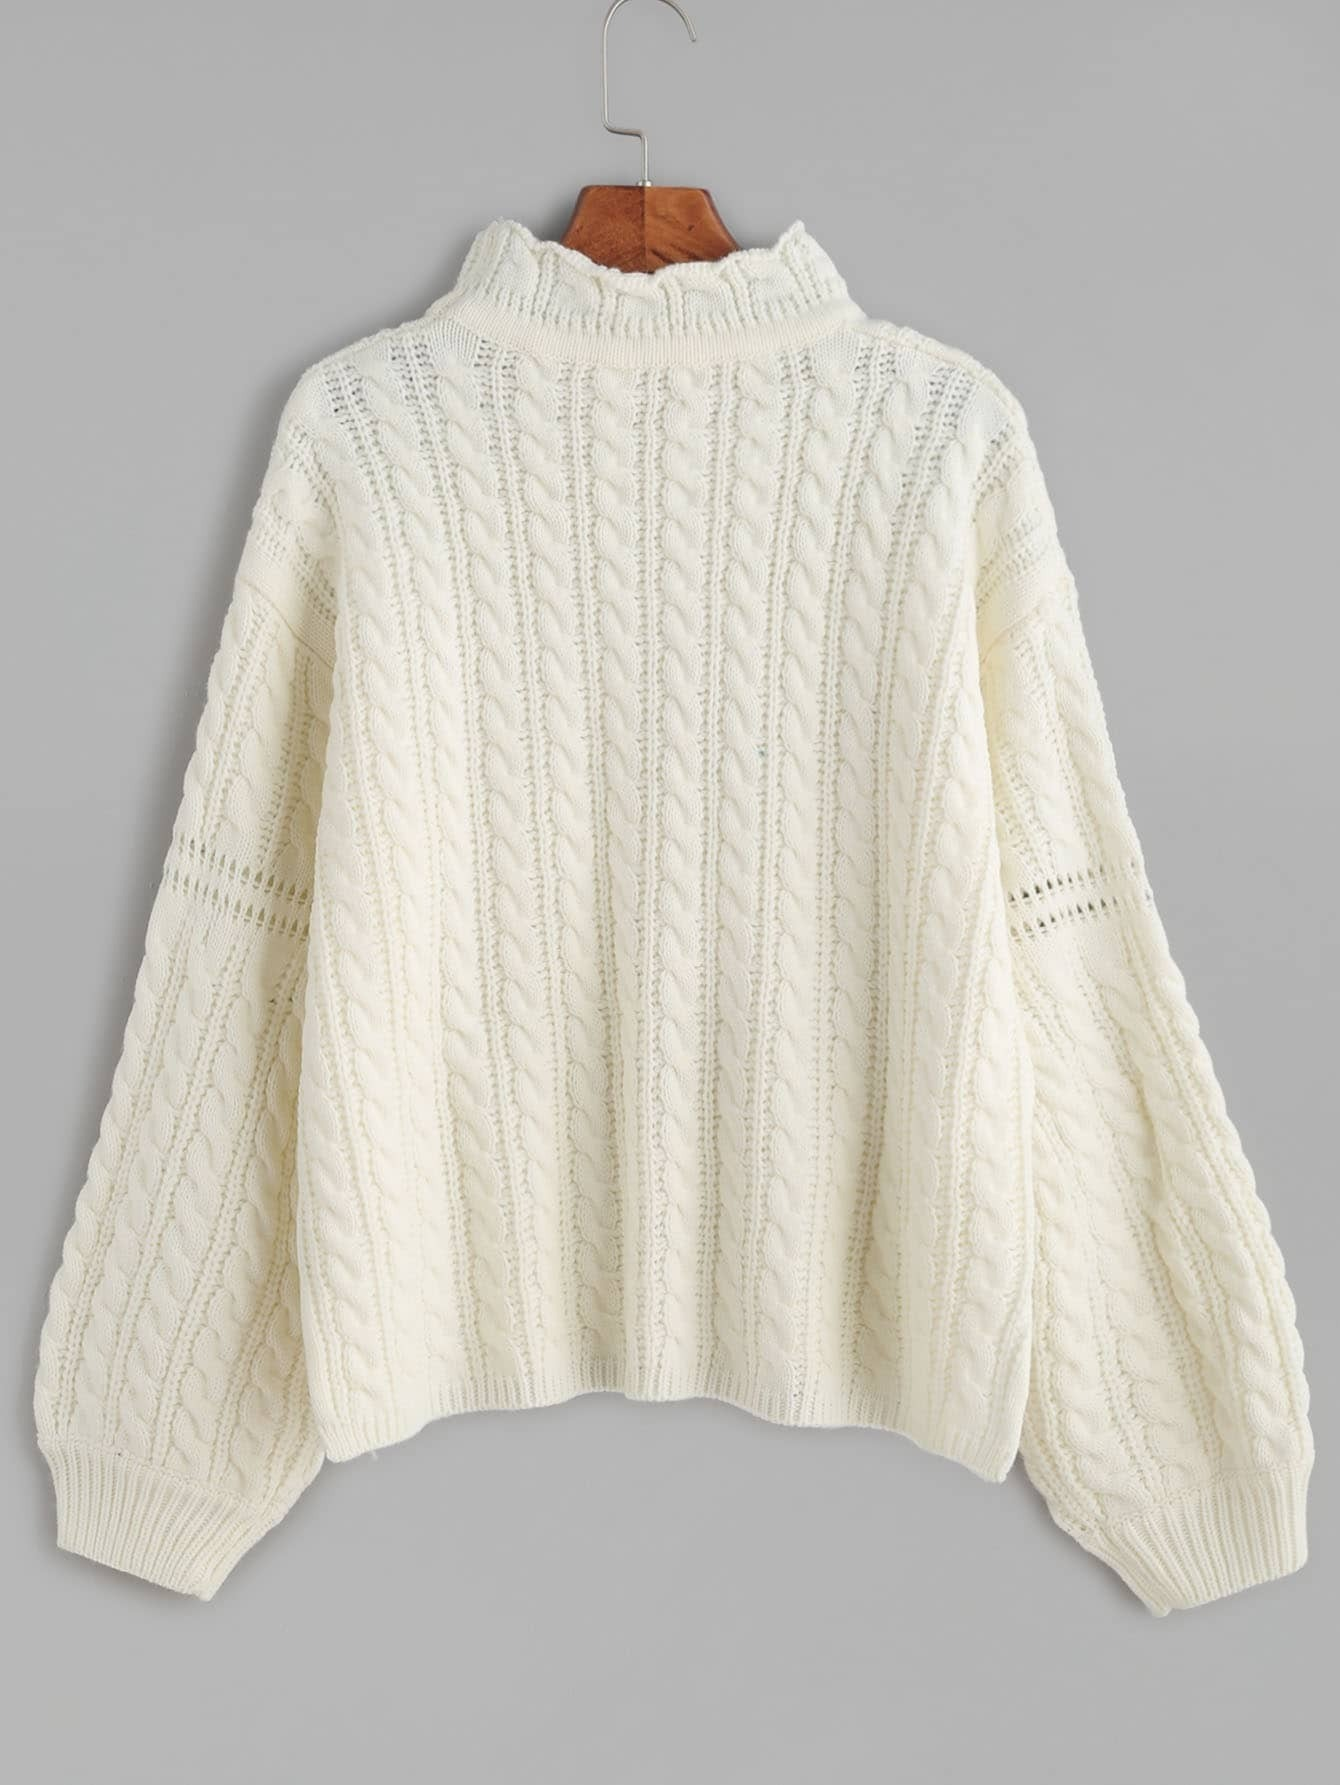 Shop our Collection of Women's Tan/Beige Sweaters at hitseparatingfiletransfer.tk for the Latest Designer Brands & Styles. FREE SHIPPING AVAILABLE! Style & Co Geometric Jacquard-Knit Sweater Coat, Created for Macy's Charter Club Cashmere Cable-Knit Button-Trim Sweater, Created for Macy's.